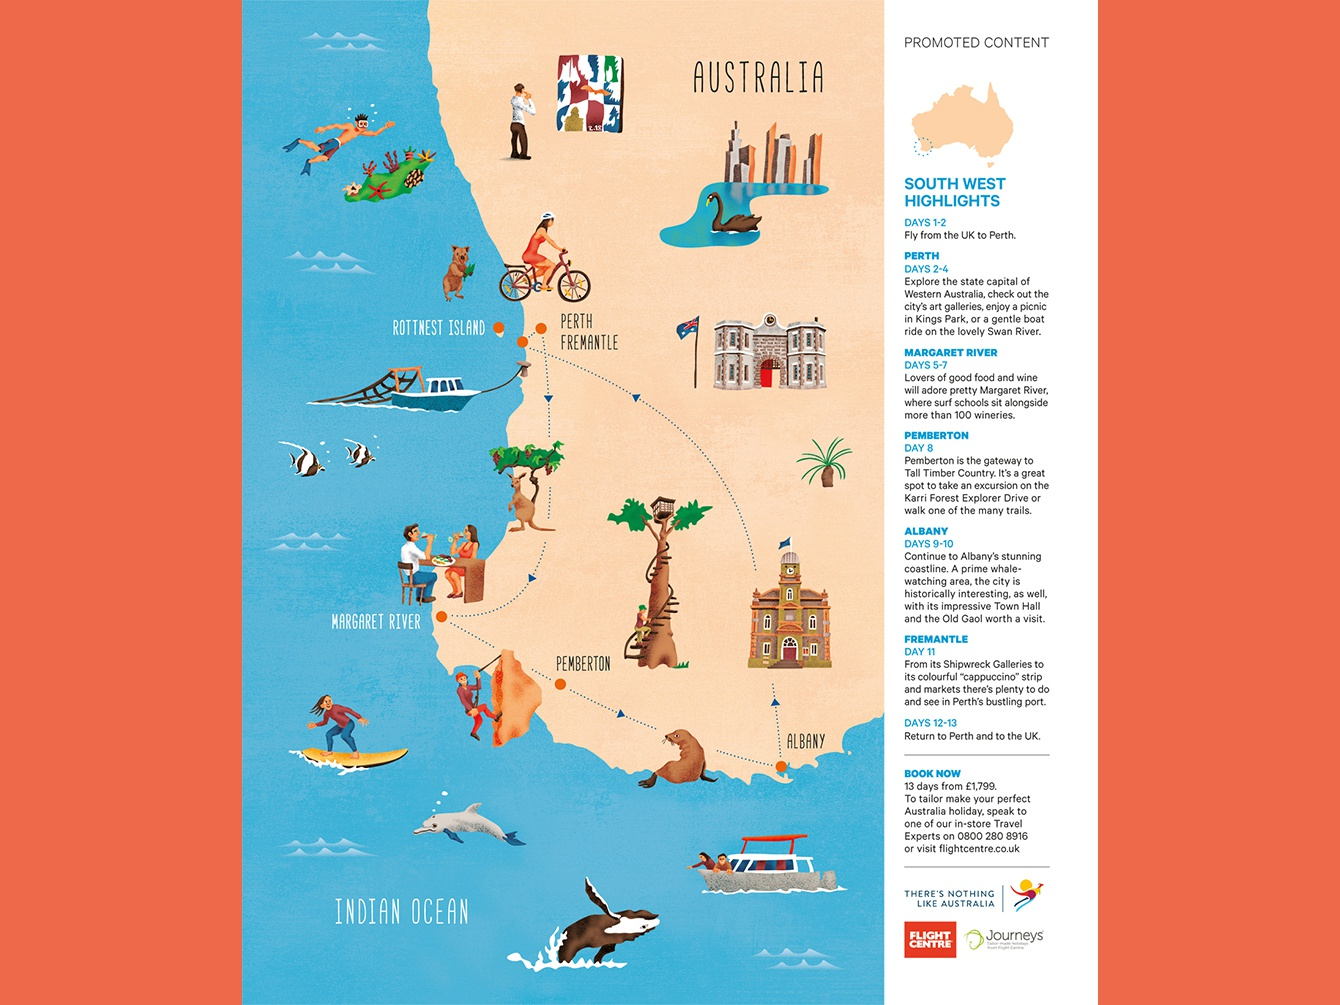 Southwest Australia Map.South West Highlights By Simon Jugovic Fink On Dribbble